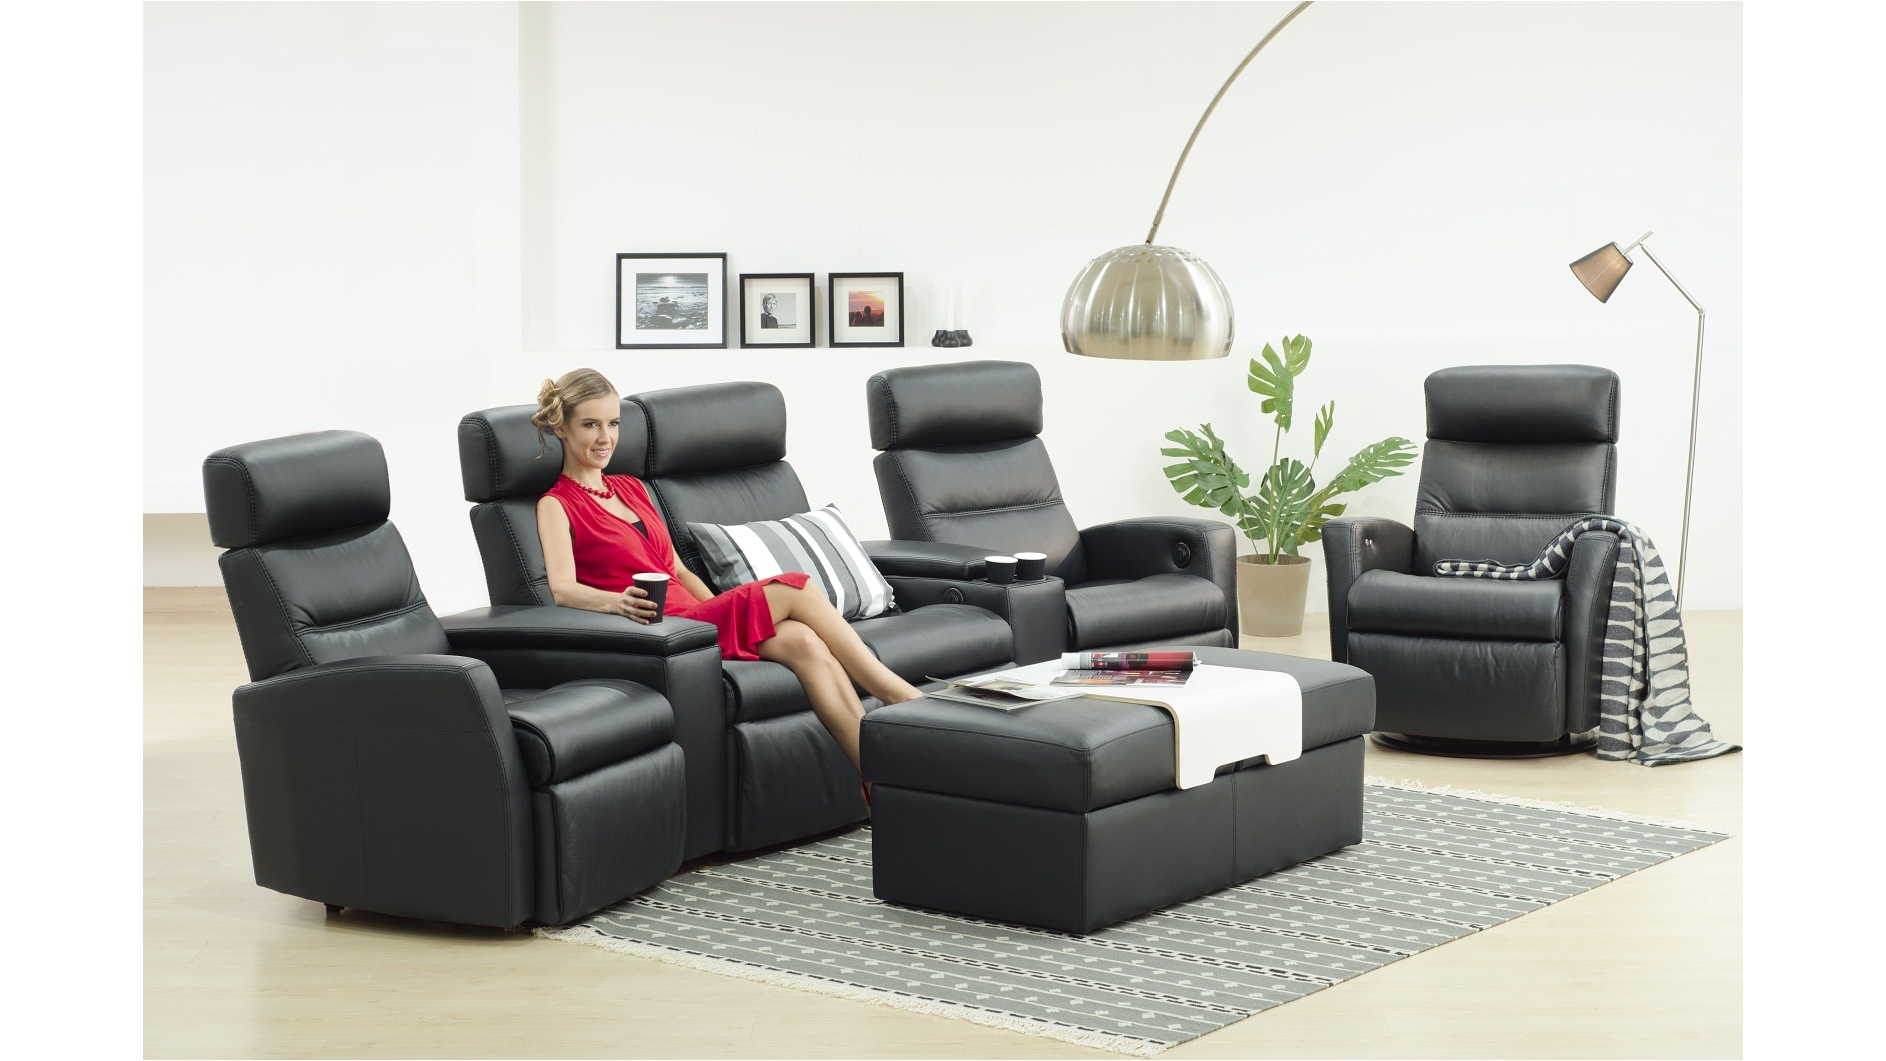 Divani Recliner Chair Home Furniture Outdoor Bbqs Living Room Recliner Lounges Img Divani 2 Seater Home Theatre Recliner